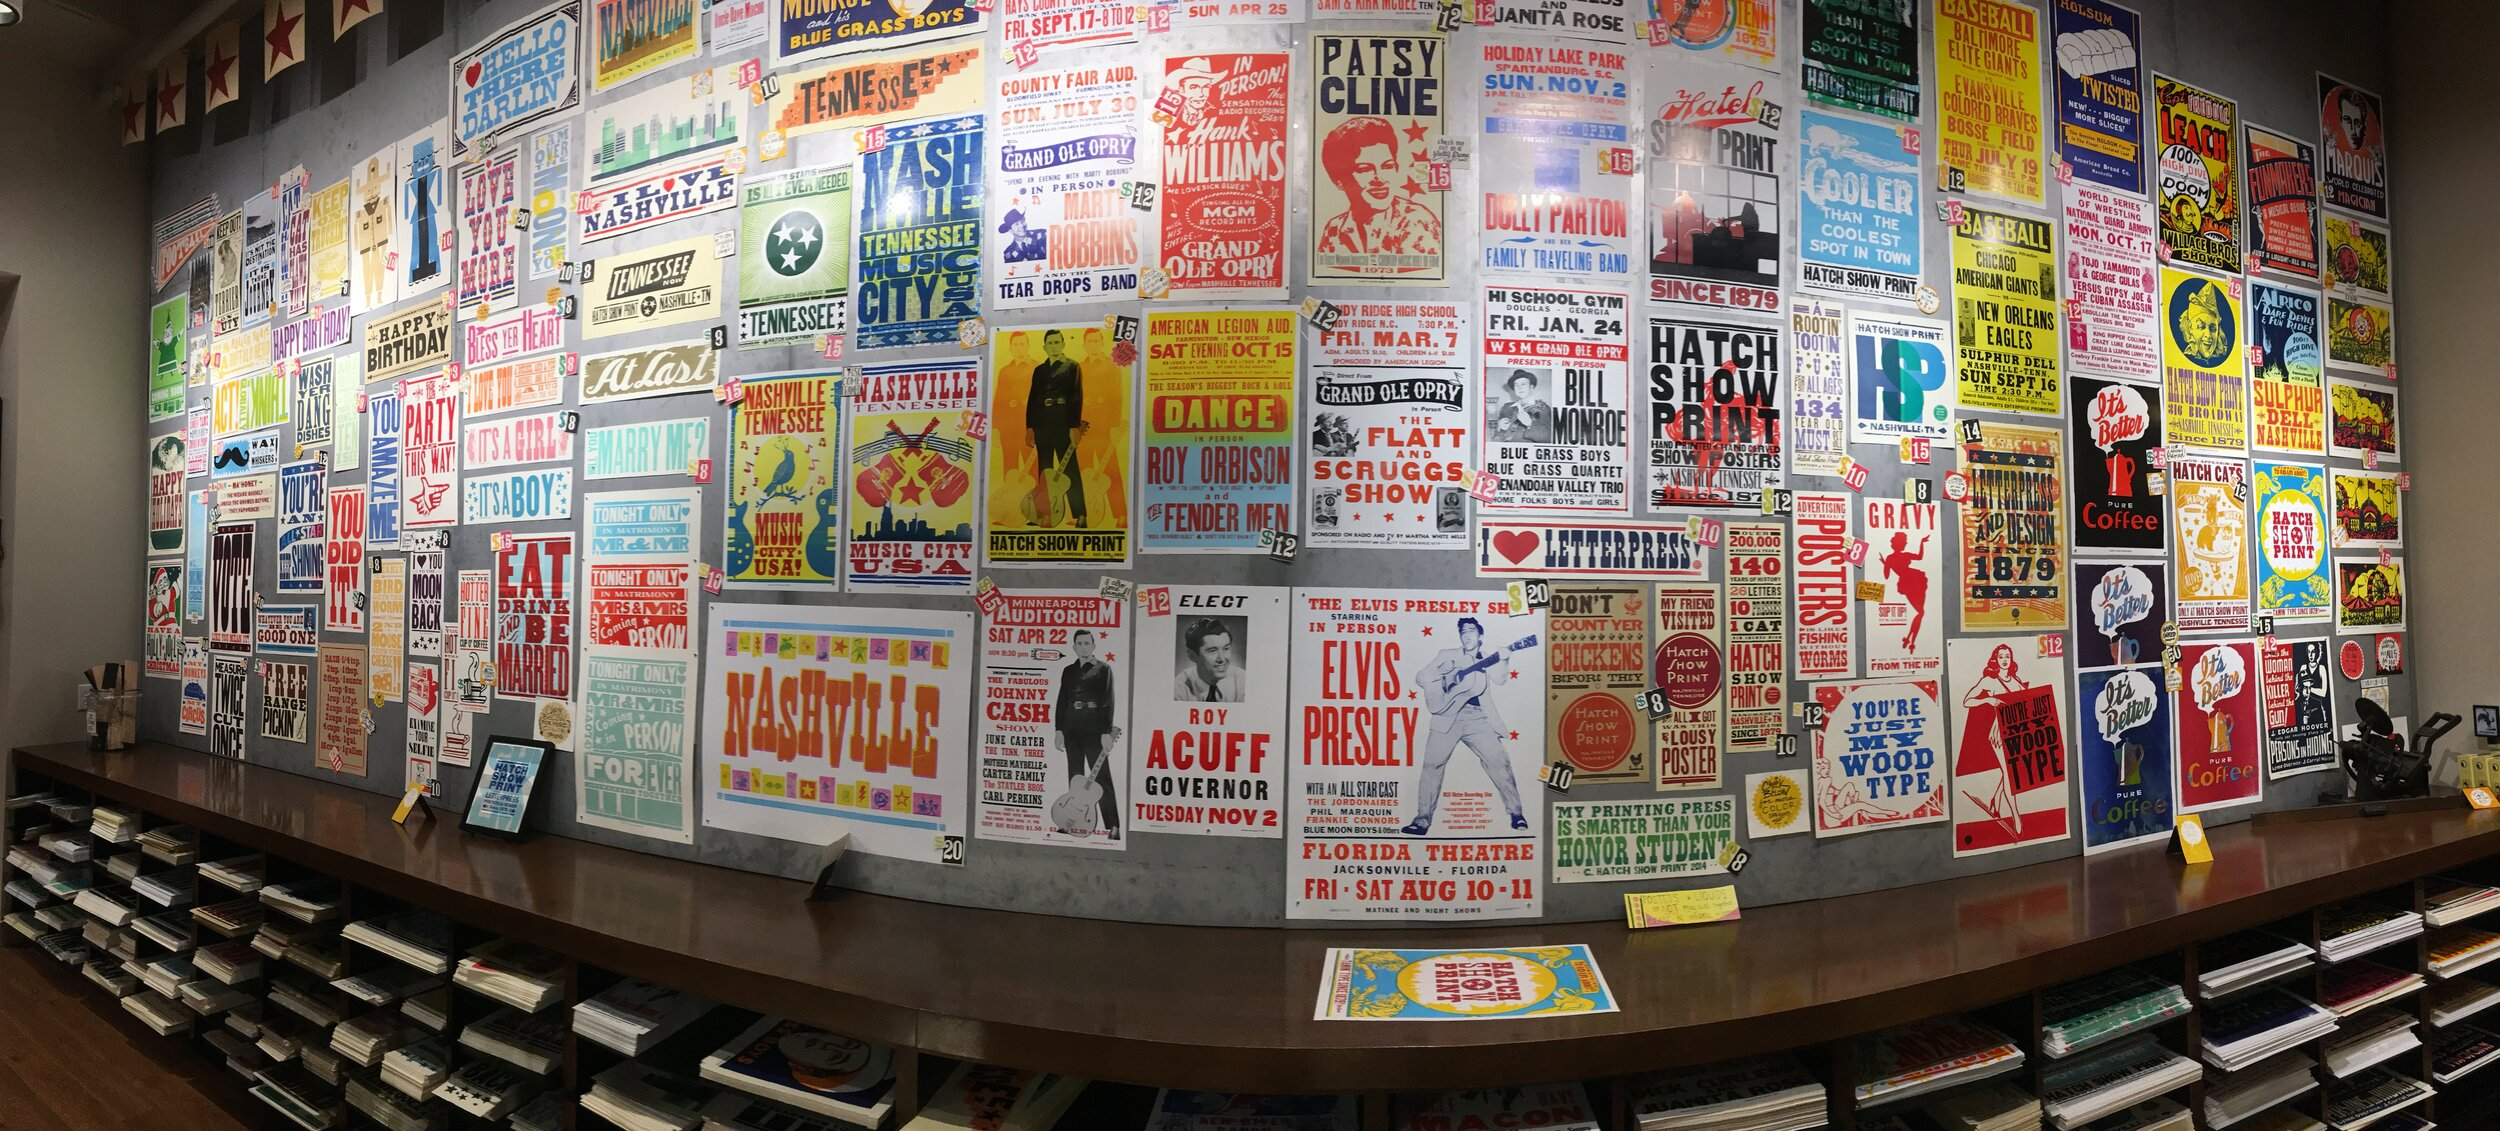 All the posters!